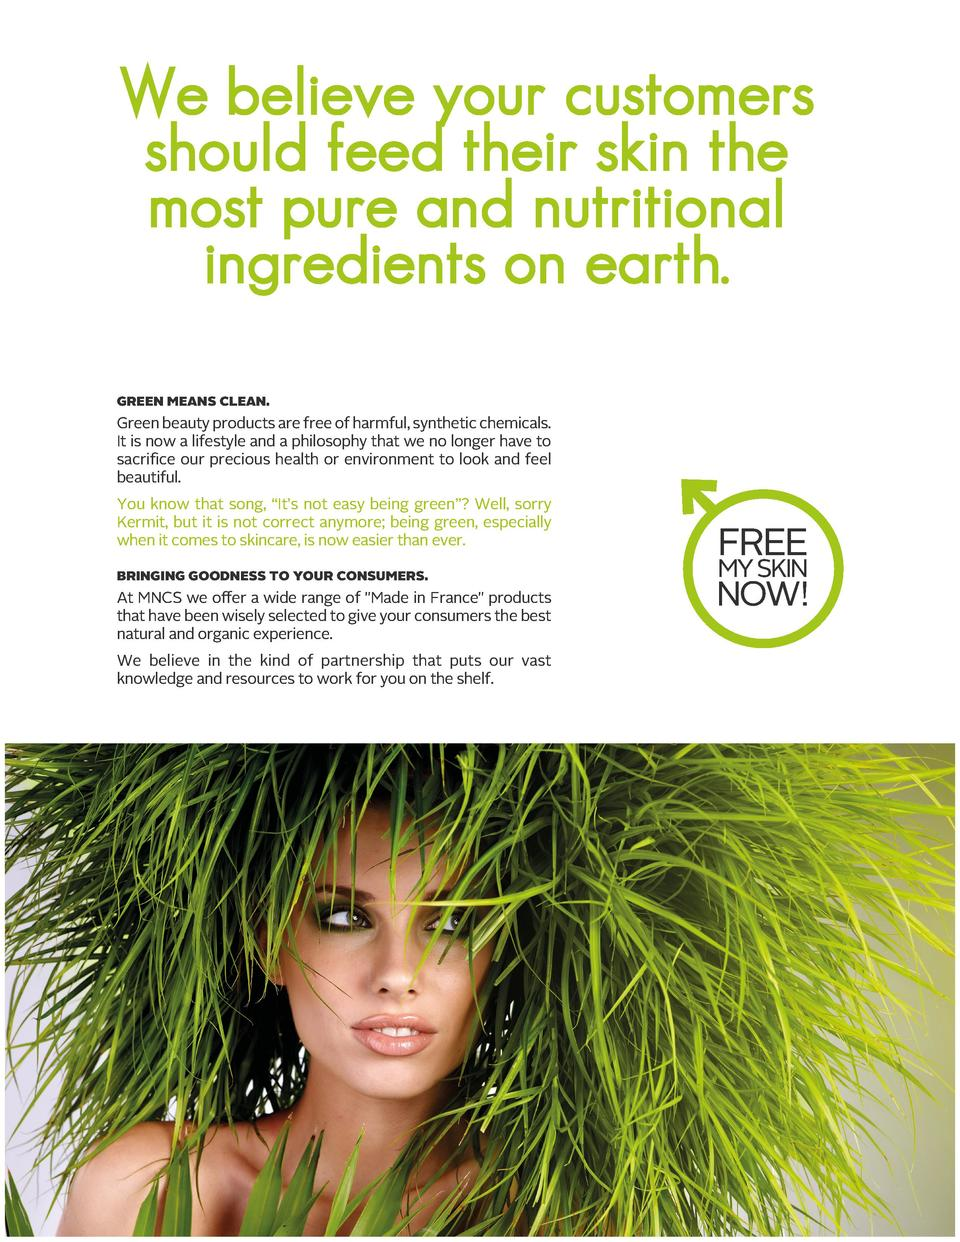 We believe your customers should feed their skin the most pure and nutritional ingredients on earth. green means clean. Gr...